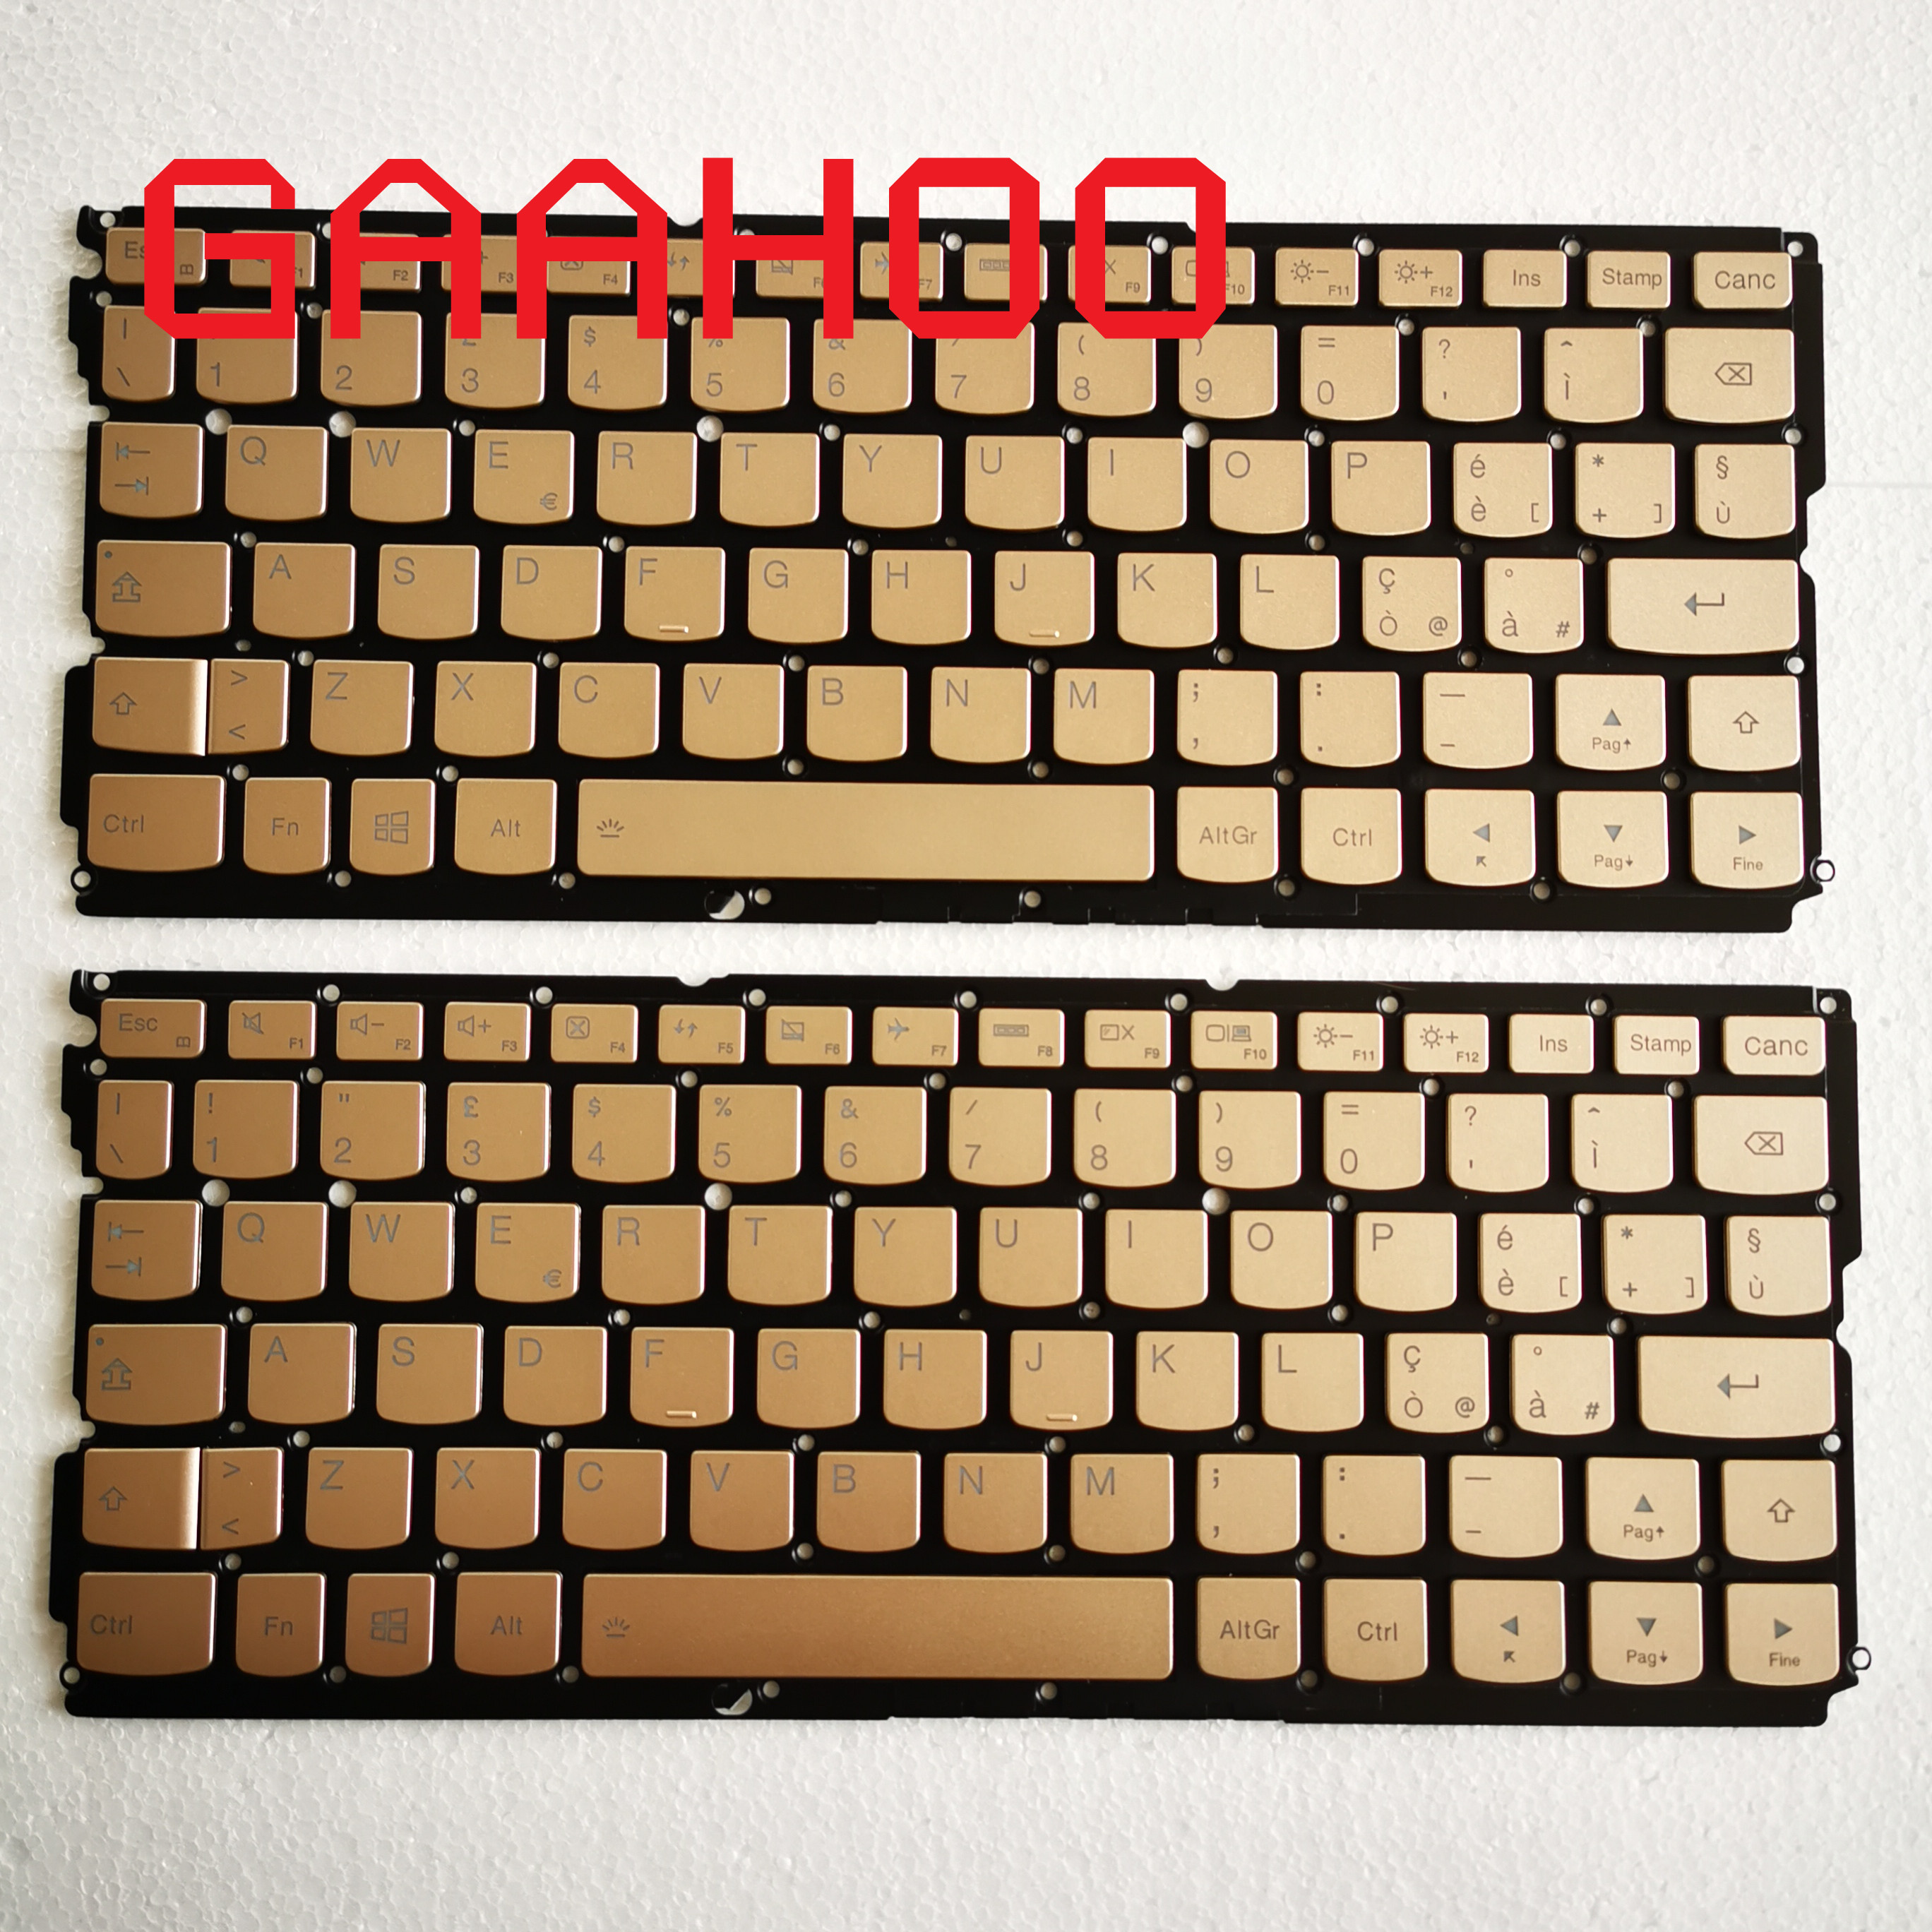 IT Italy  Backlight  Keyboard For Lenovo YOGA900-12 YOGA 900S-12 Yoga 4S Laptop Backlight Keyboard  GOLDEN